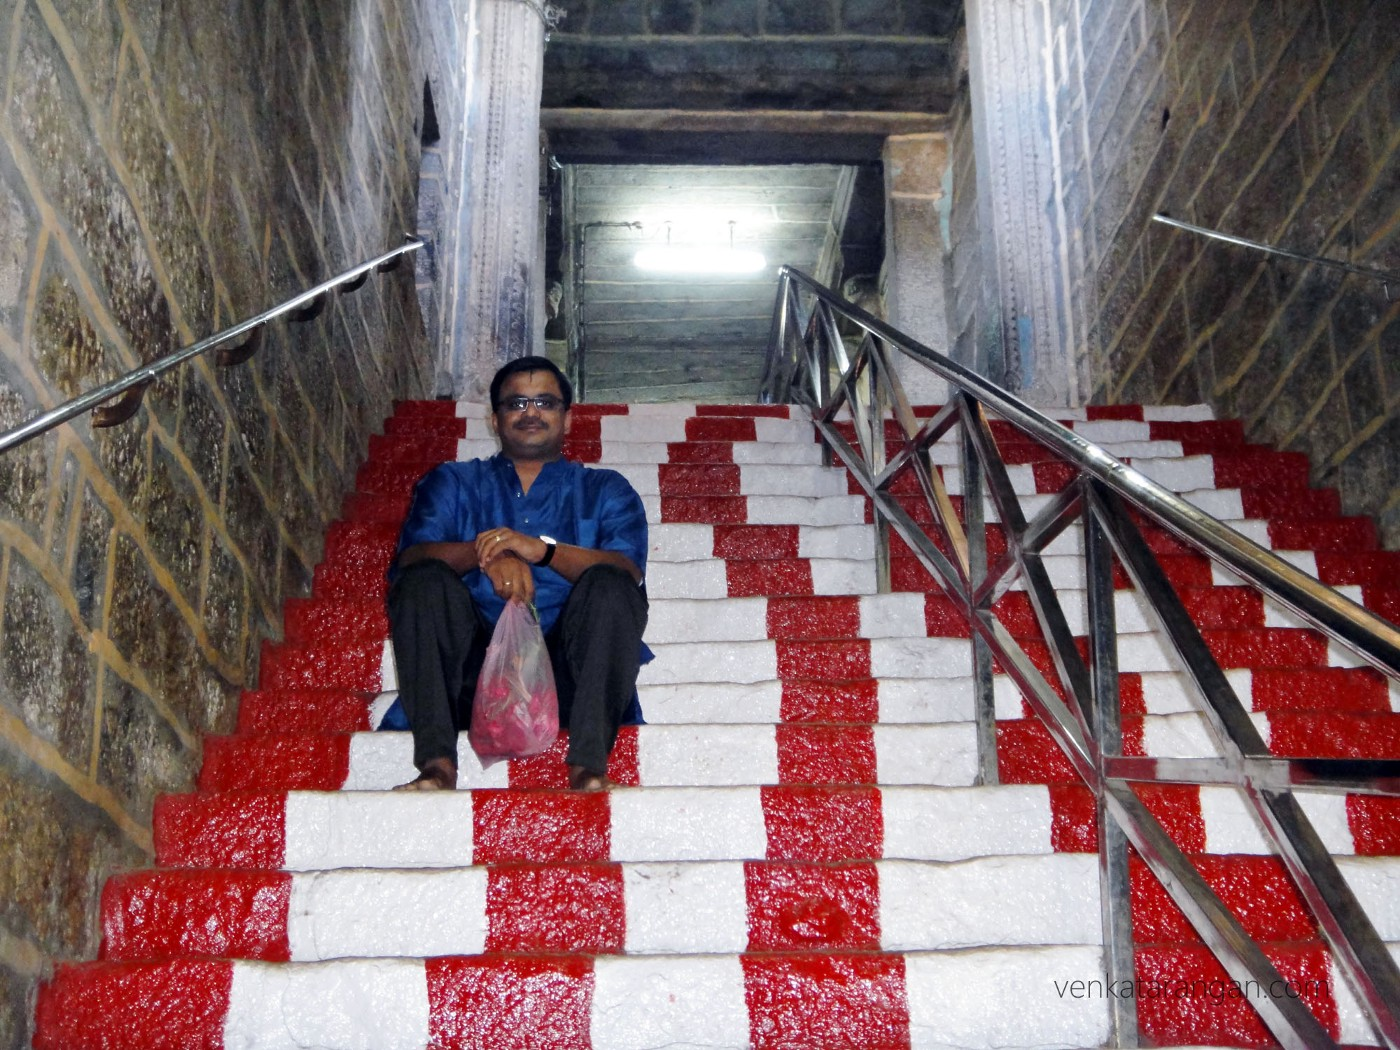 Steps going to the top of Trichy Rockfort temple (திருச்சி உச்சி விநாயகர் கோயில்)